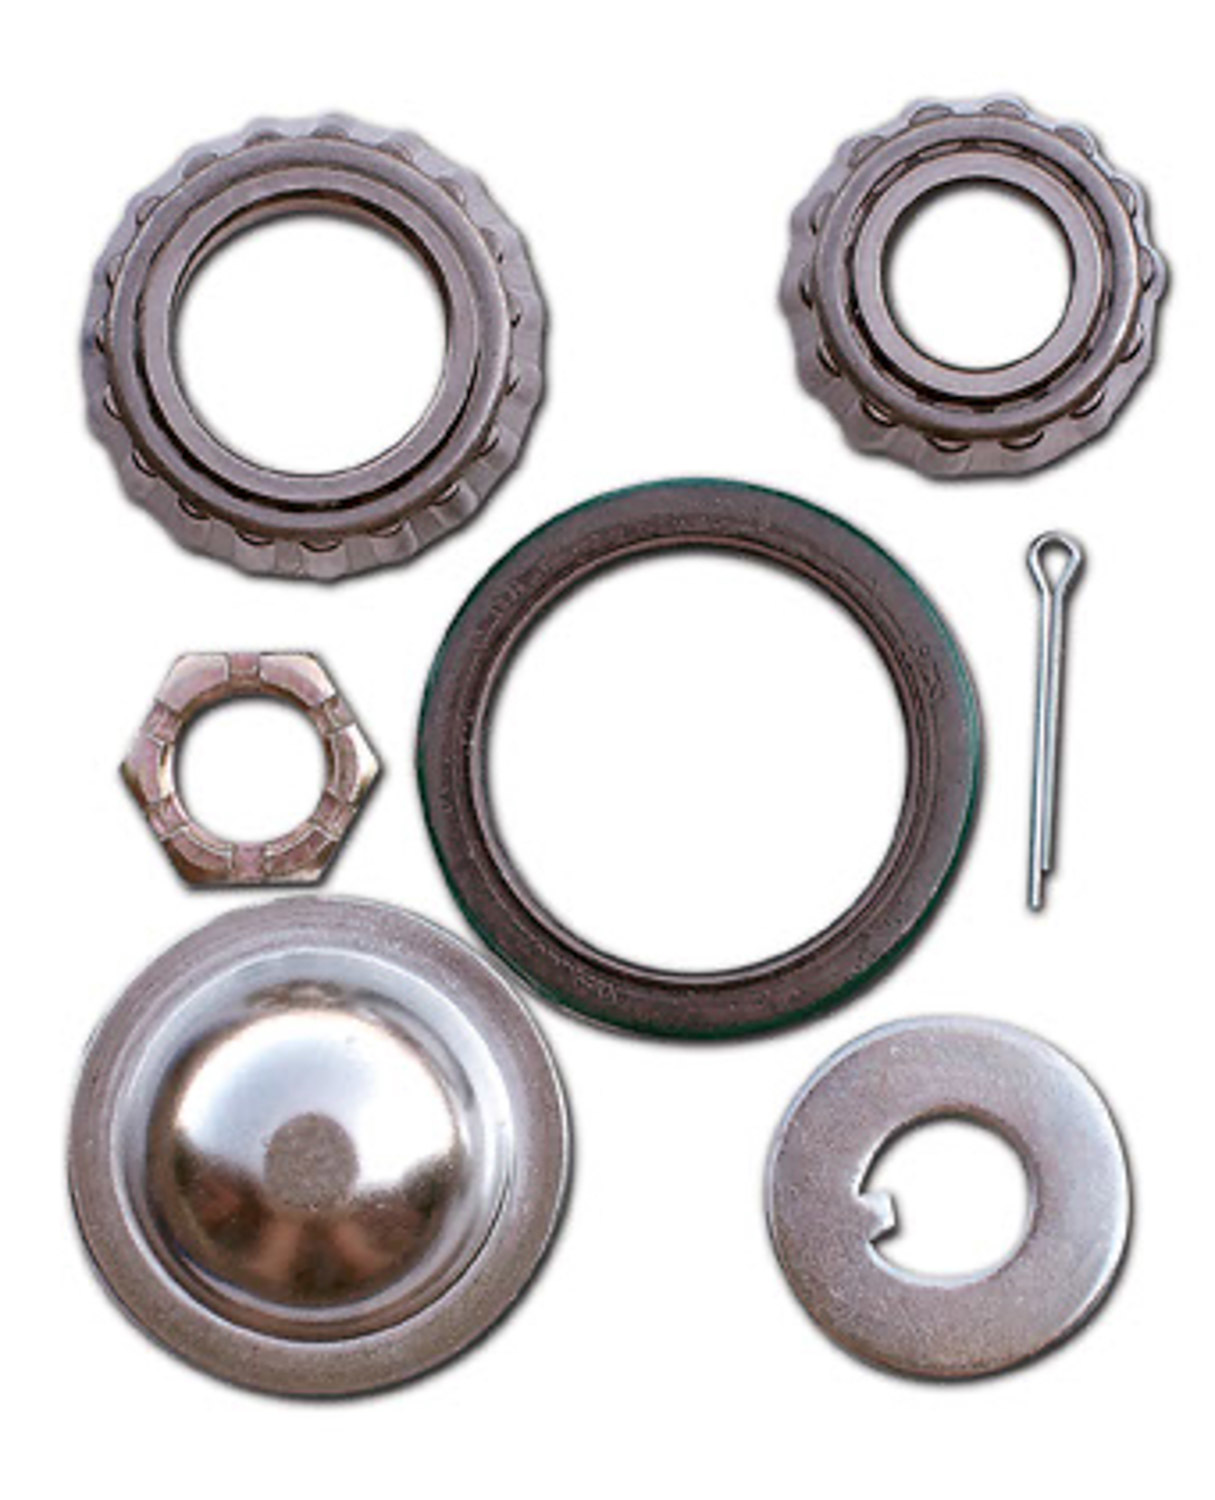 AFCO Racing Products 9851-8551 Wheel Bearing Kit, Inner and Outer, Hub Seal/Spindle Nut/Dust Cap/Cotter Pin, Steel, Hybrid, Kit